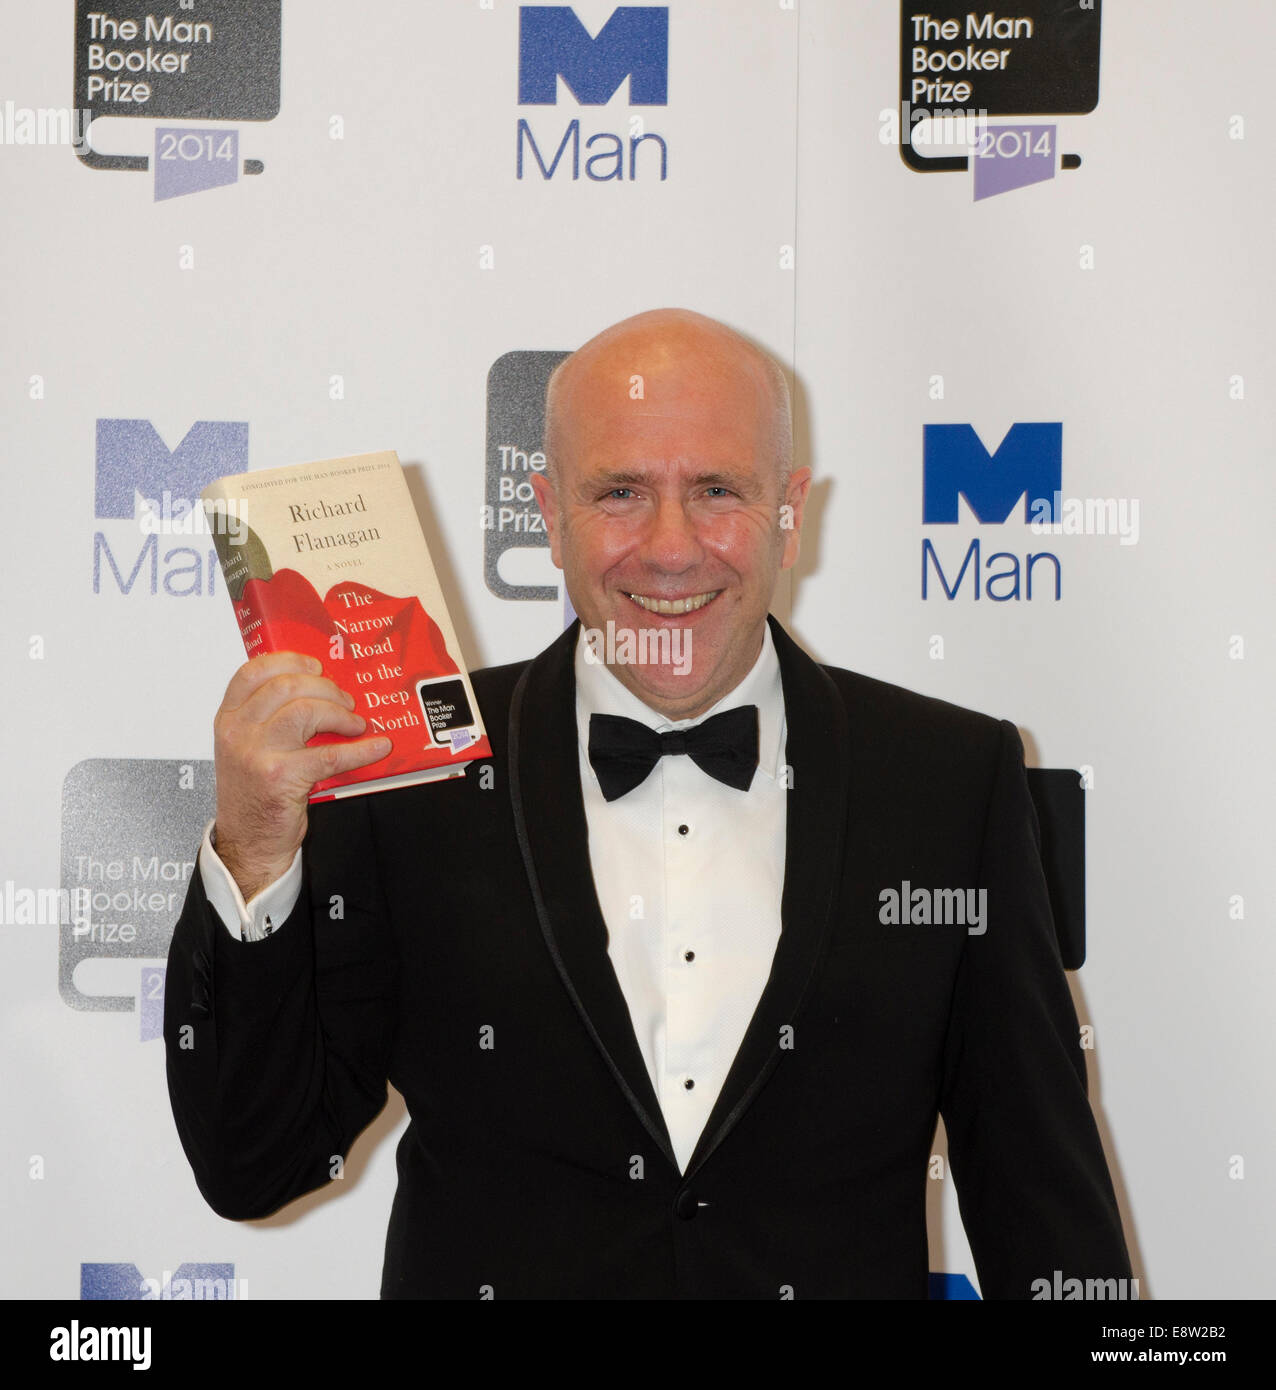 London, UK. 14th October, 2014. Man Booker Prize for Fiction 2014 winner Richard Flanagan for The Narrow Road to - Stock Image